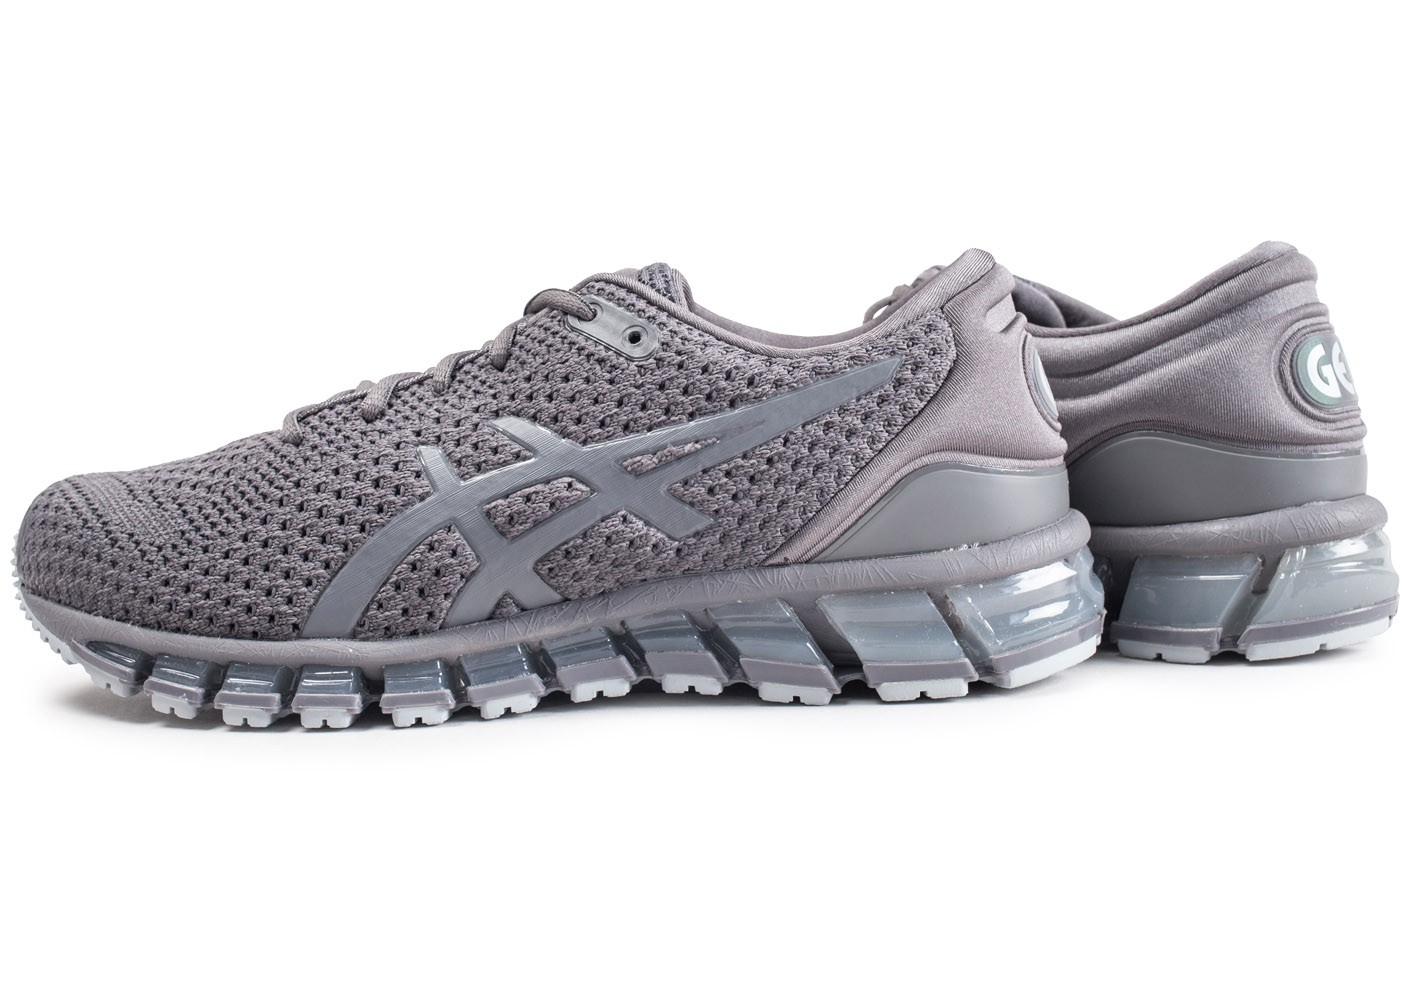 check out 7ba77 e242b Asics Gel Quantum 360 Knit 2 Carbon - Chaussures Baskets ...